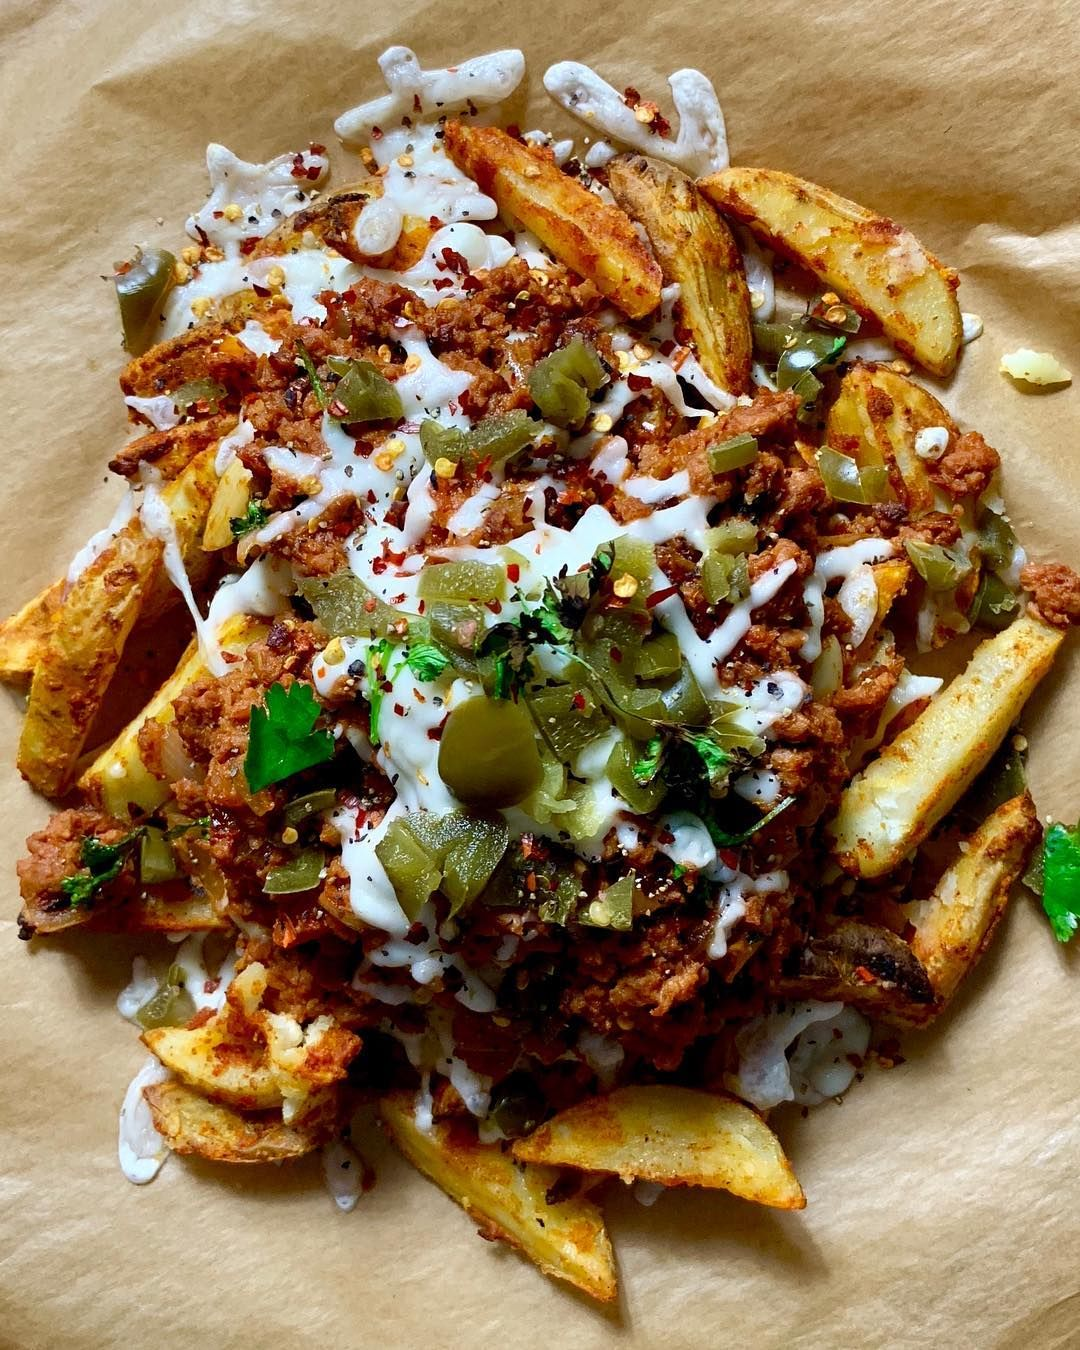 Meatless Farm Chilli Cheese Chips Chilli Cheese Fries Chili Cheese Fries Vegan Chilli